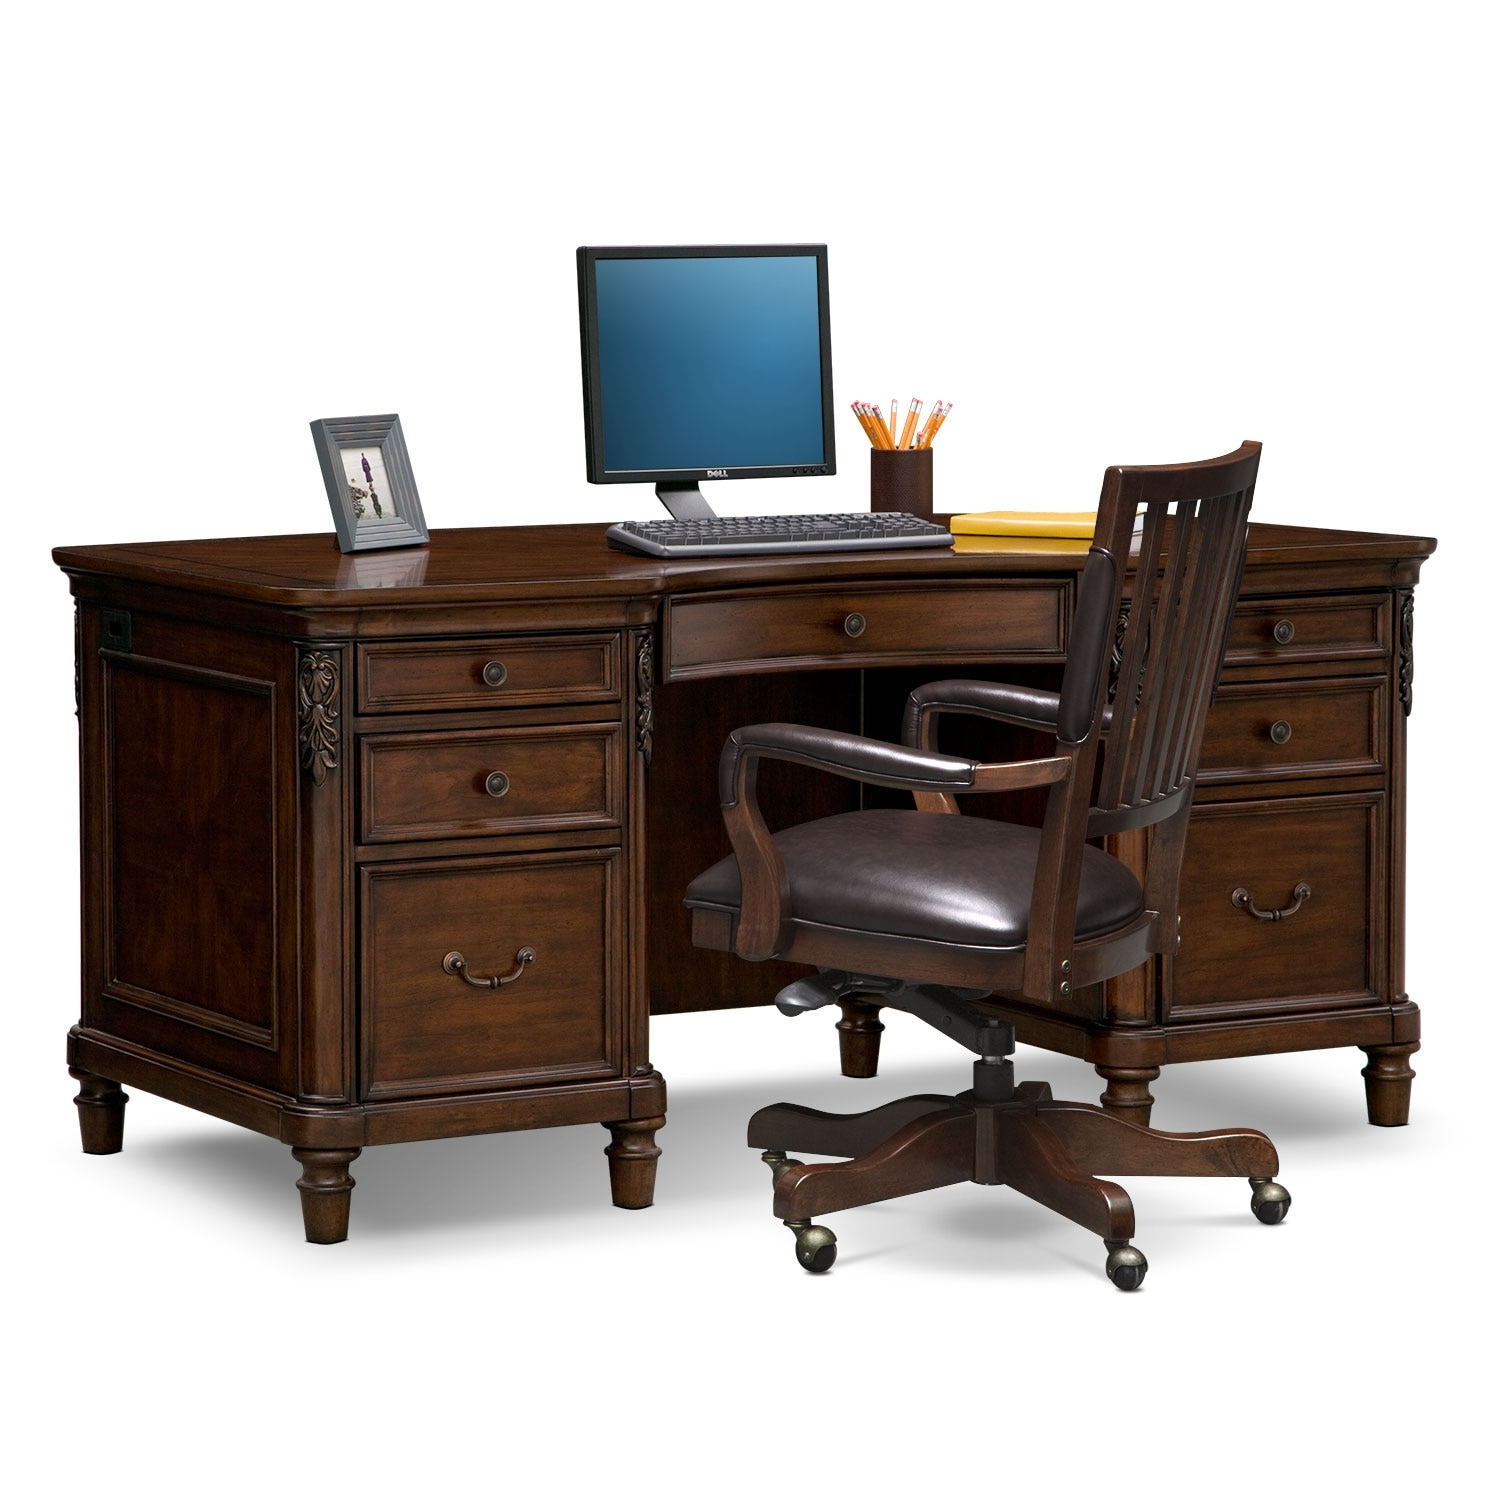 Home Office Furniture - Ashland 2 Pc. Home Office